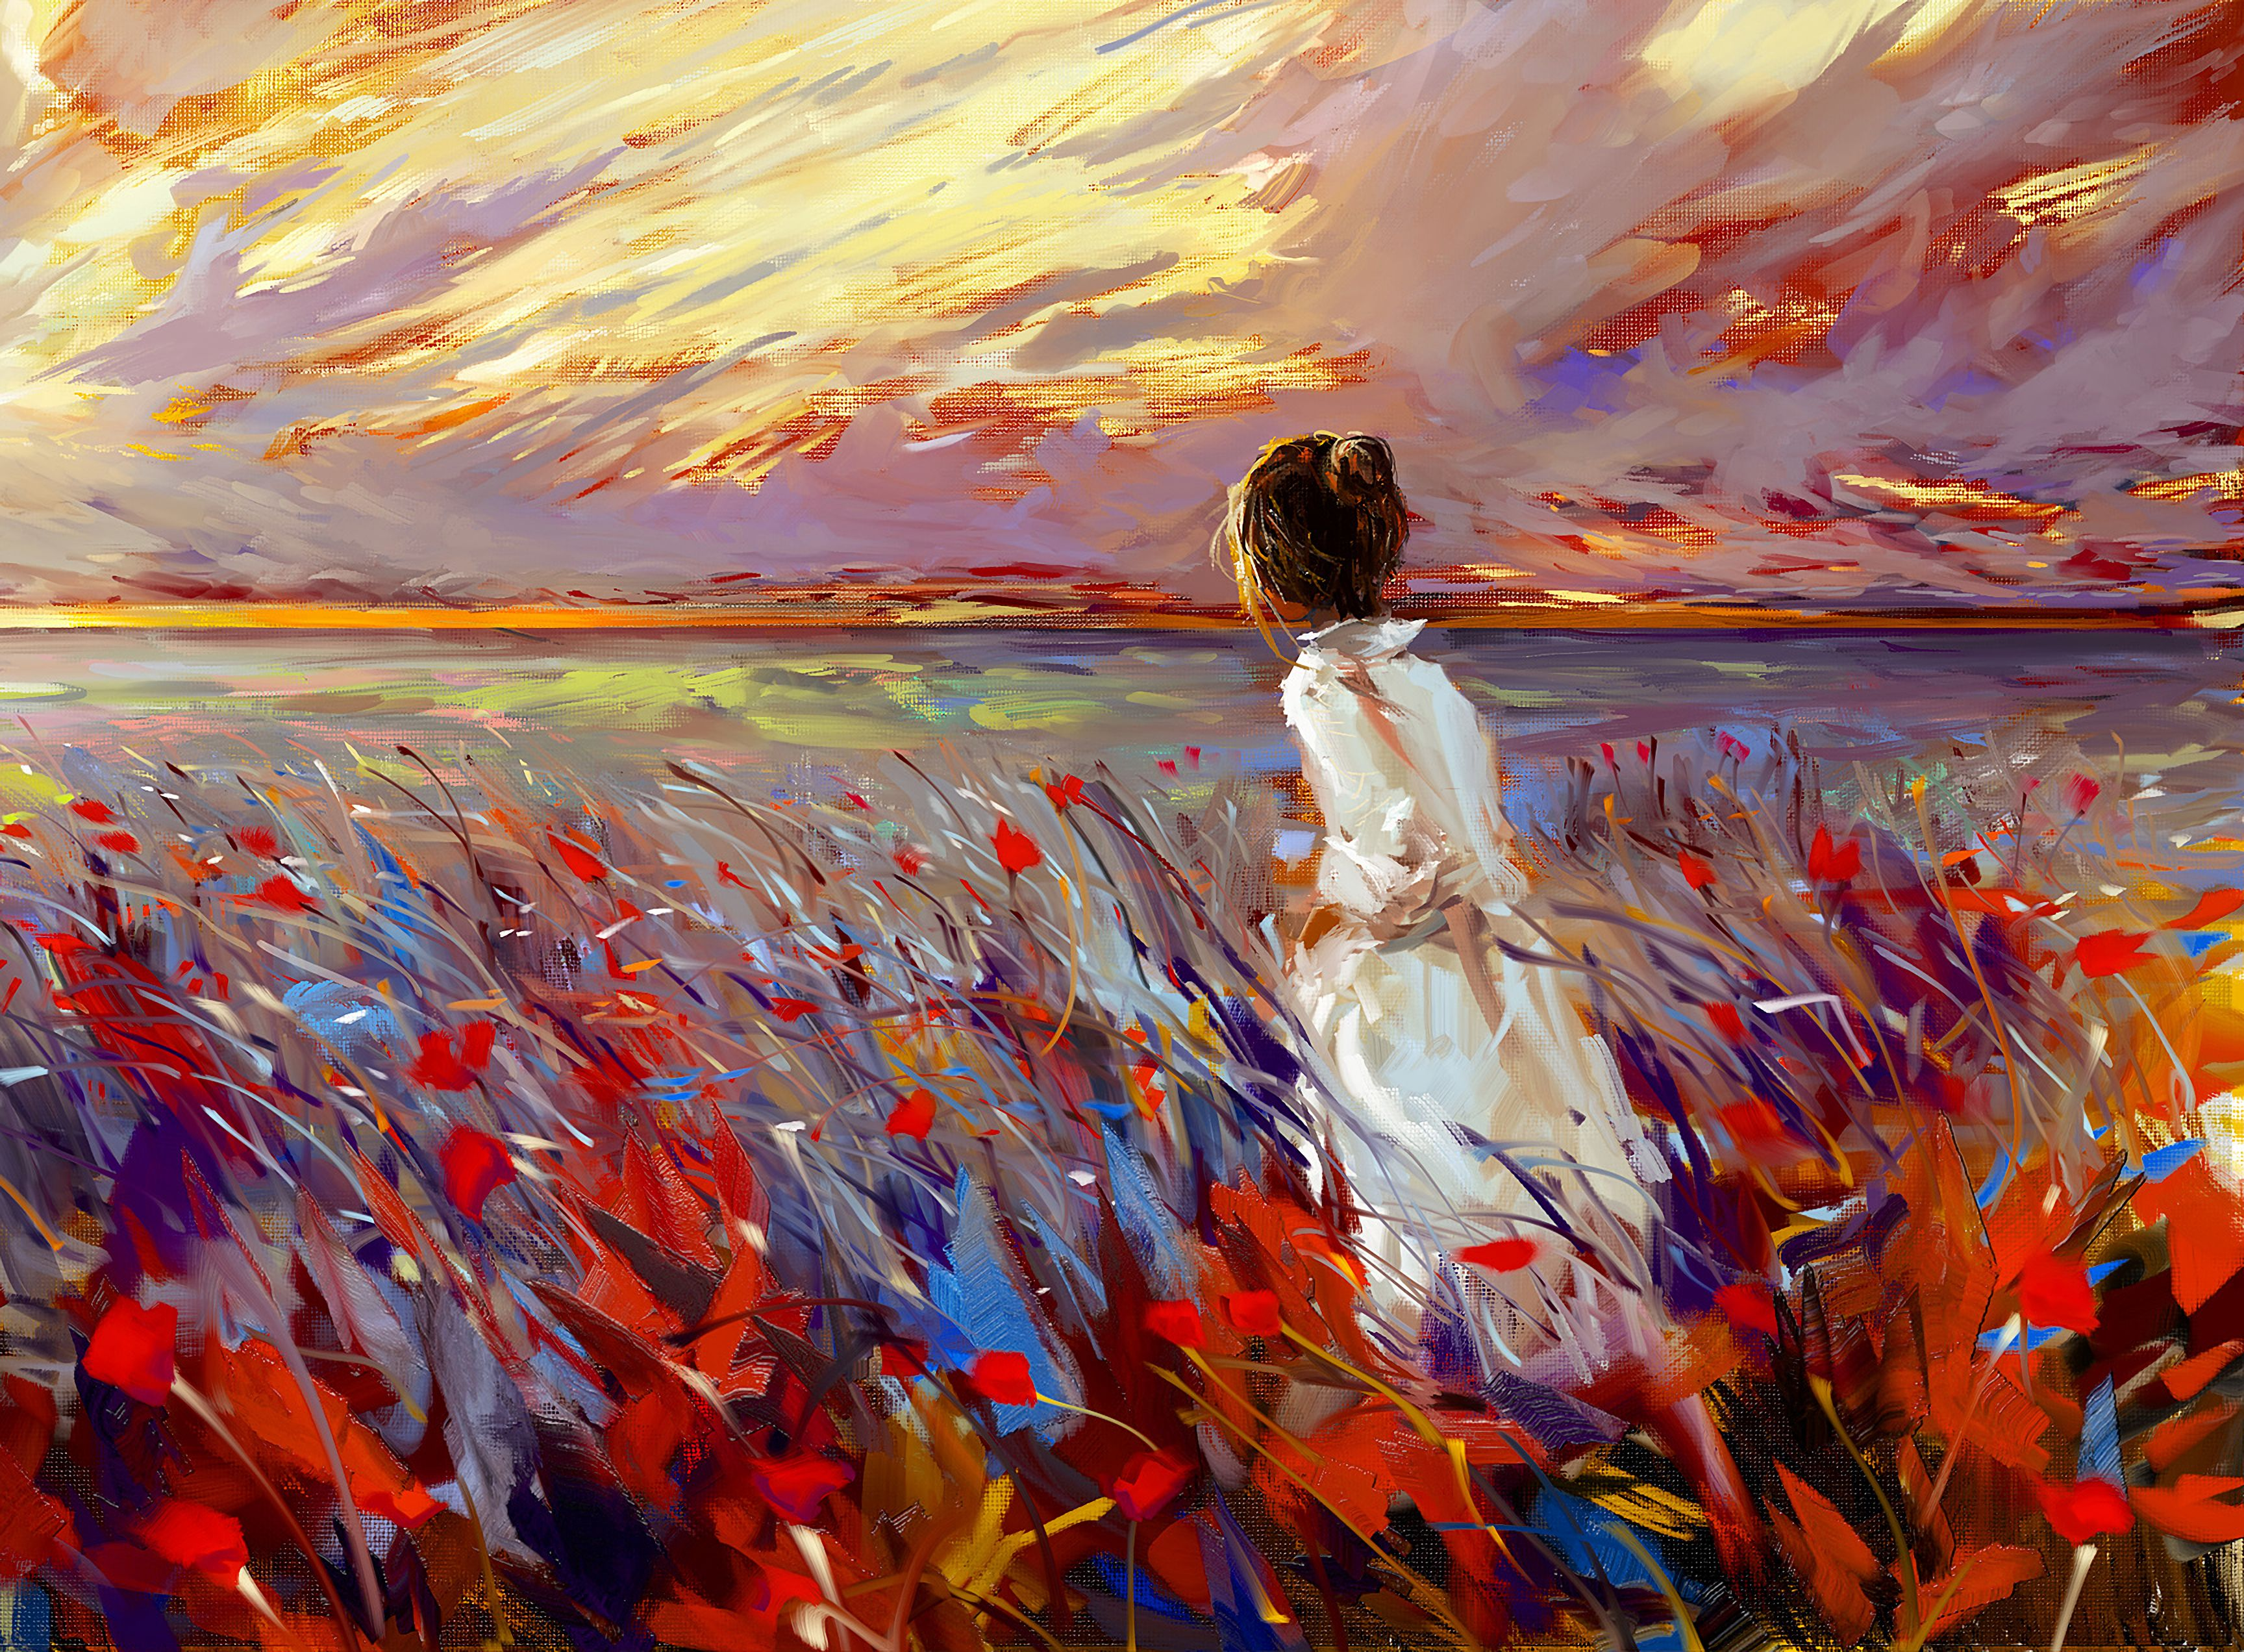 109360 download wallpaper Art, Girl, Flowers, Grass, Bright, Field screensavers and pictures for free